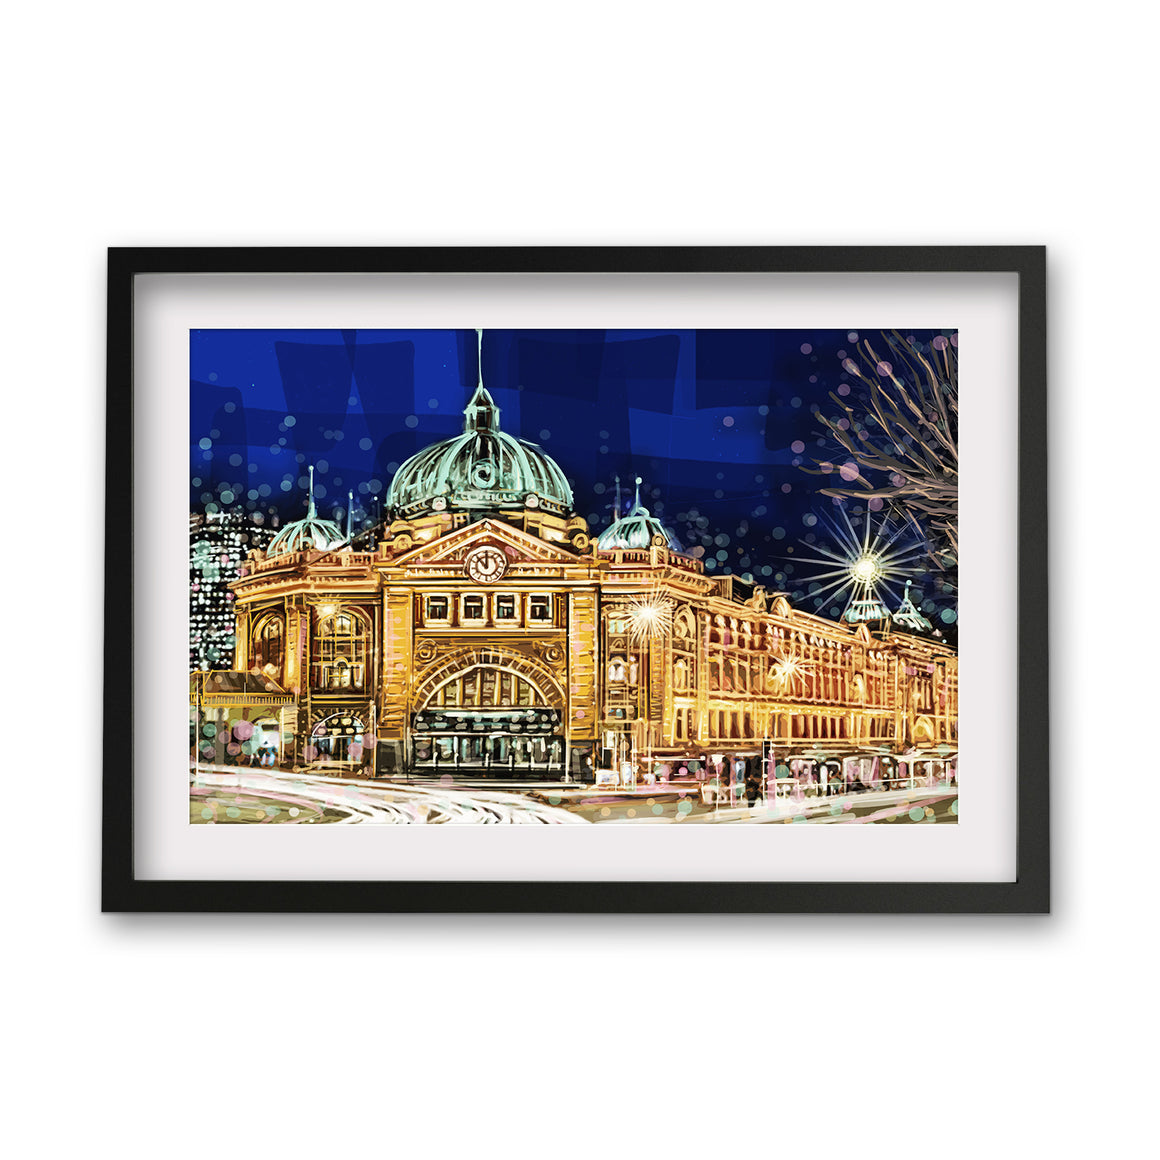 Print (Iconic) - Melbourne Flinders St Station Front night(Landscape)